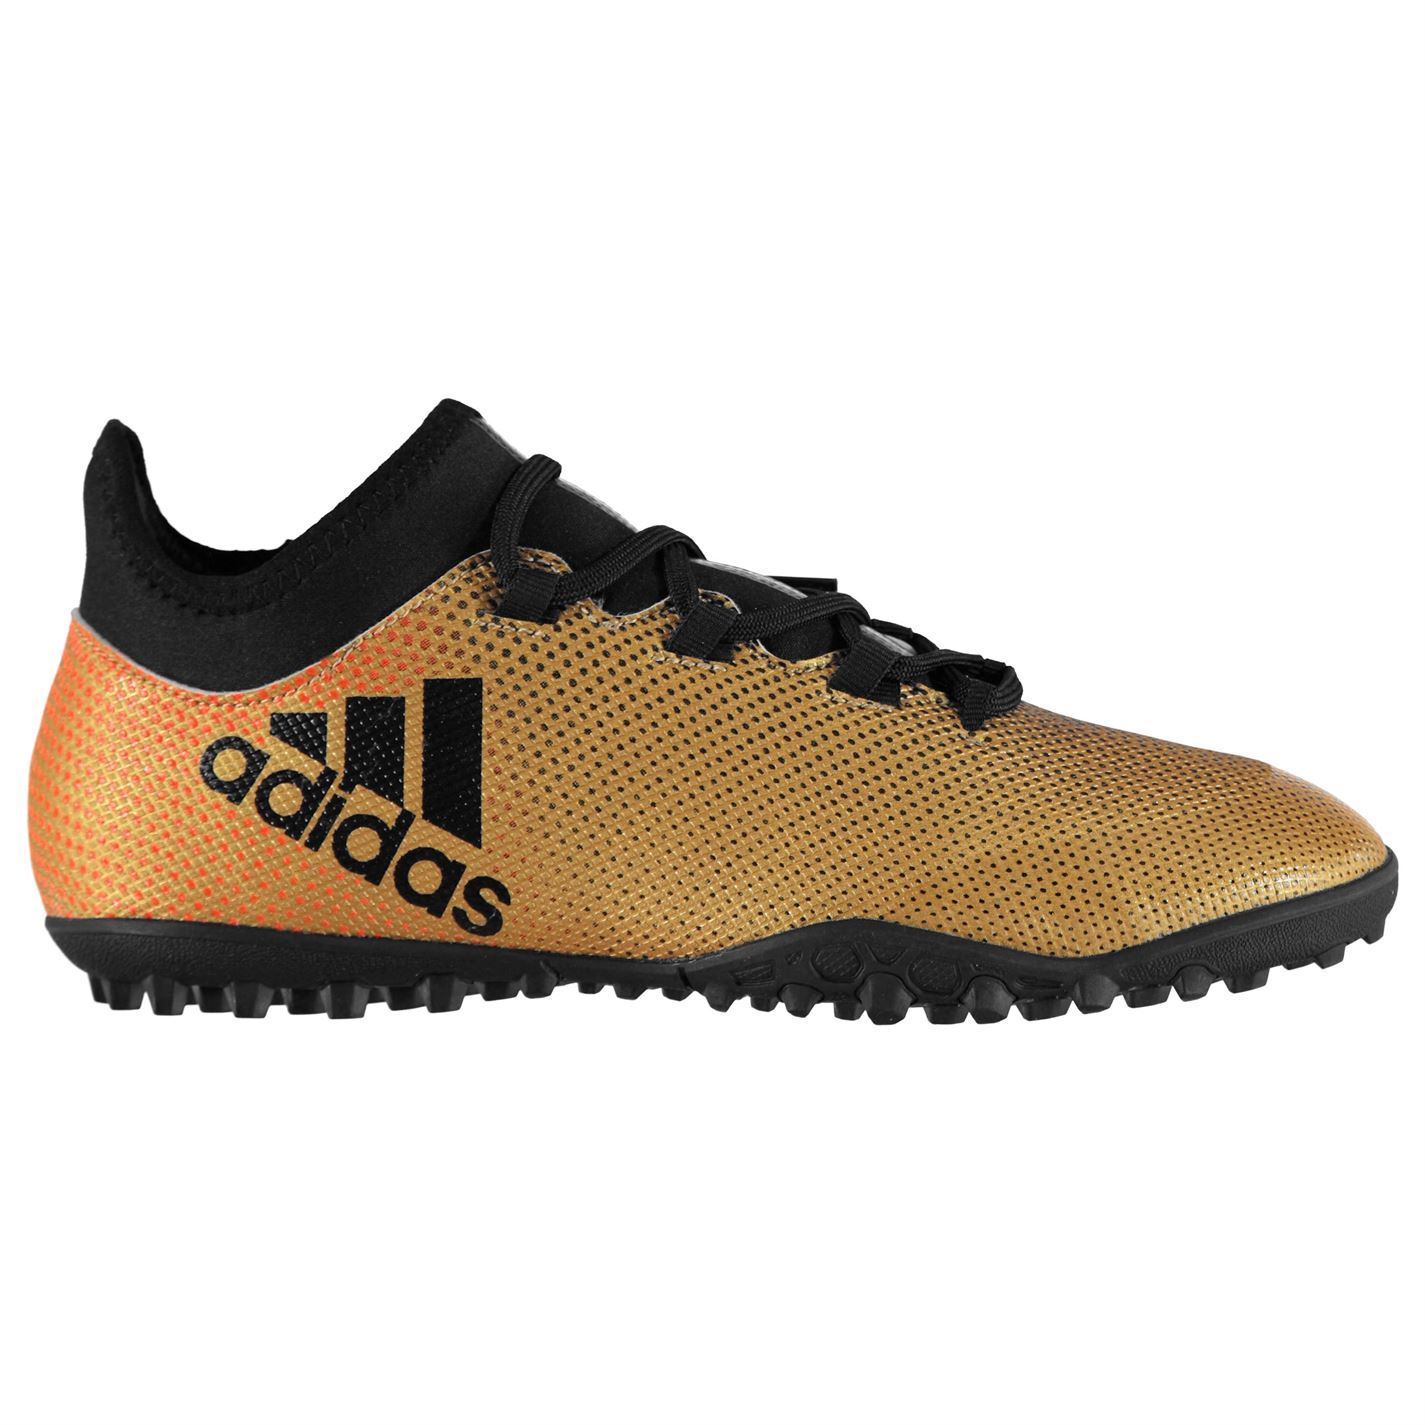 new product 99631 ea1cb ... adidas X Tango 17.3 Astro Turf Football Trainers Mens Gold Black Soccer  Shoes ...